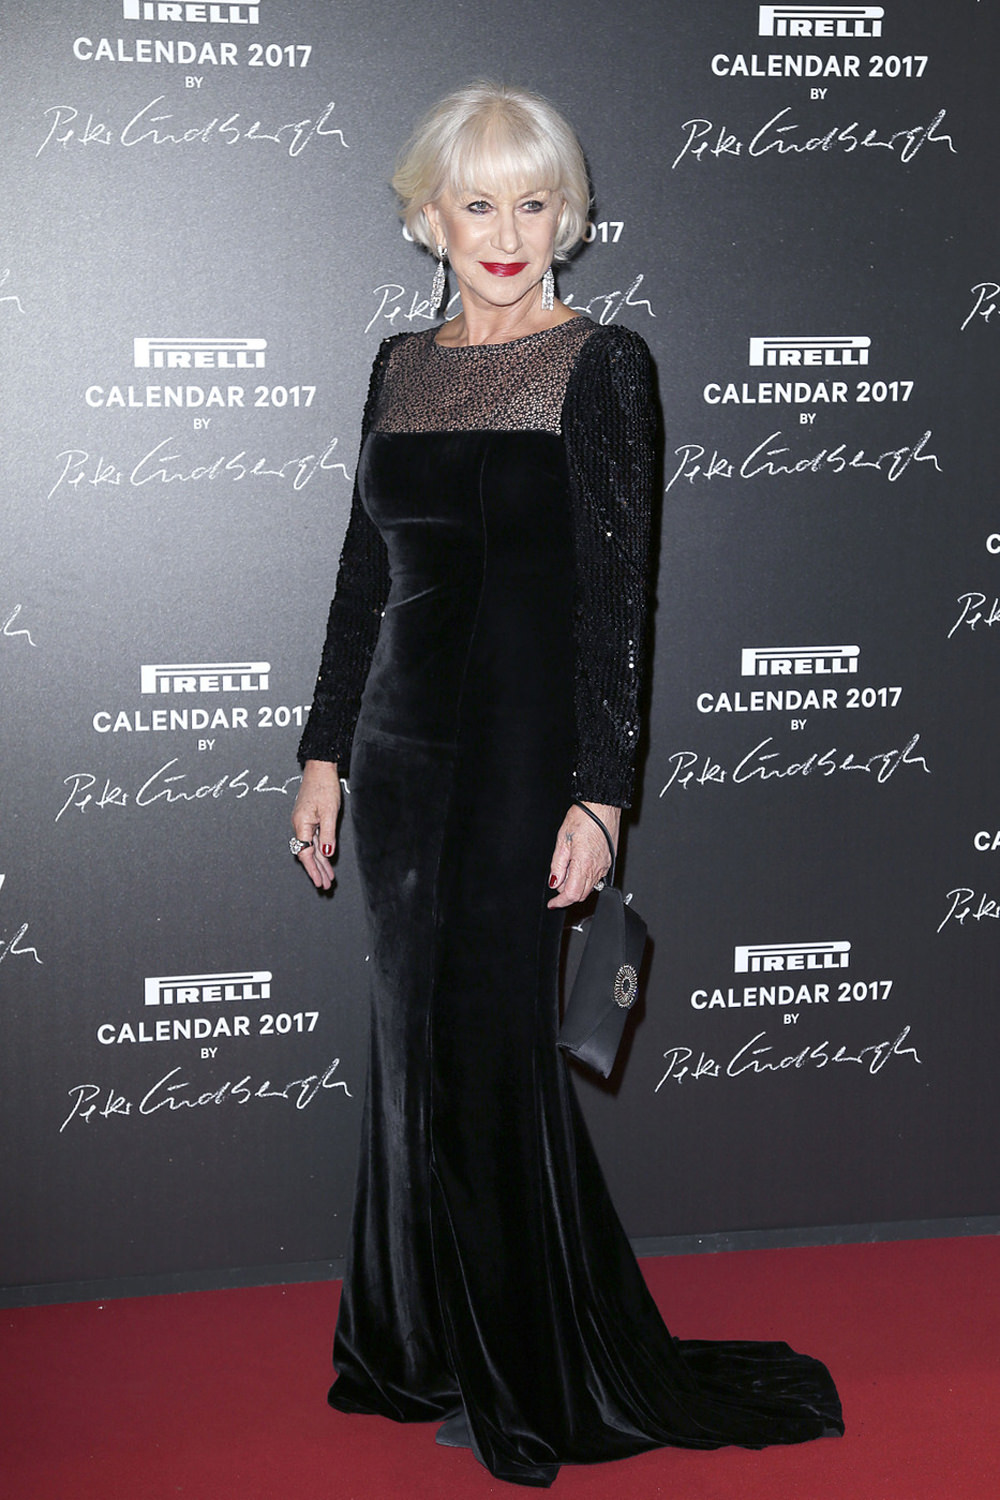 helen-mirren-pirelli-2017-calendar-launch-red-carpet-fashion-jacques-aazagury-tom-lorenzo-site-1